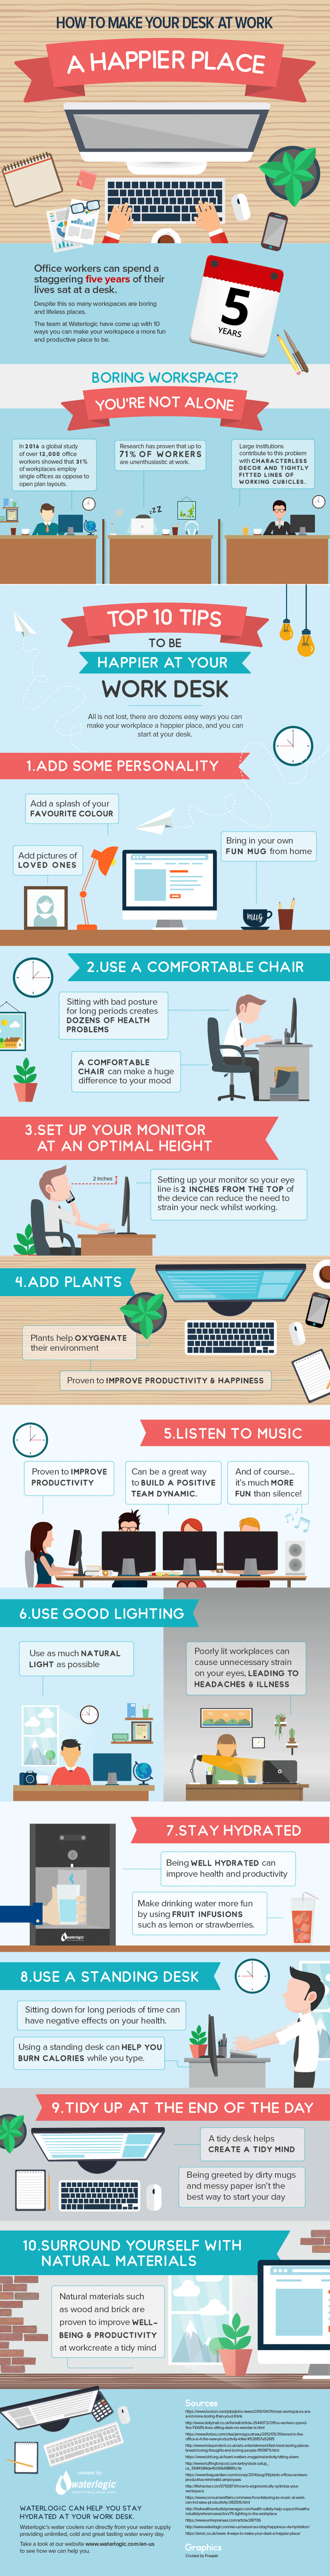 how to keep a positive attitude at work infographic